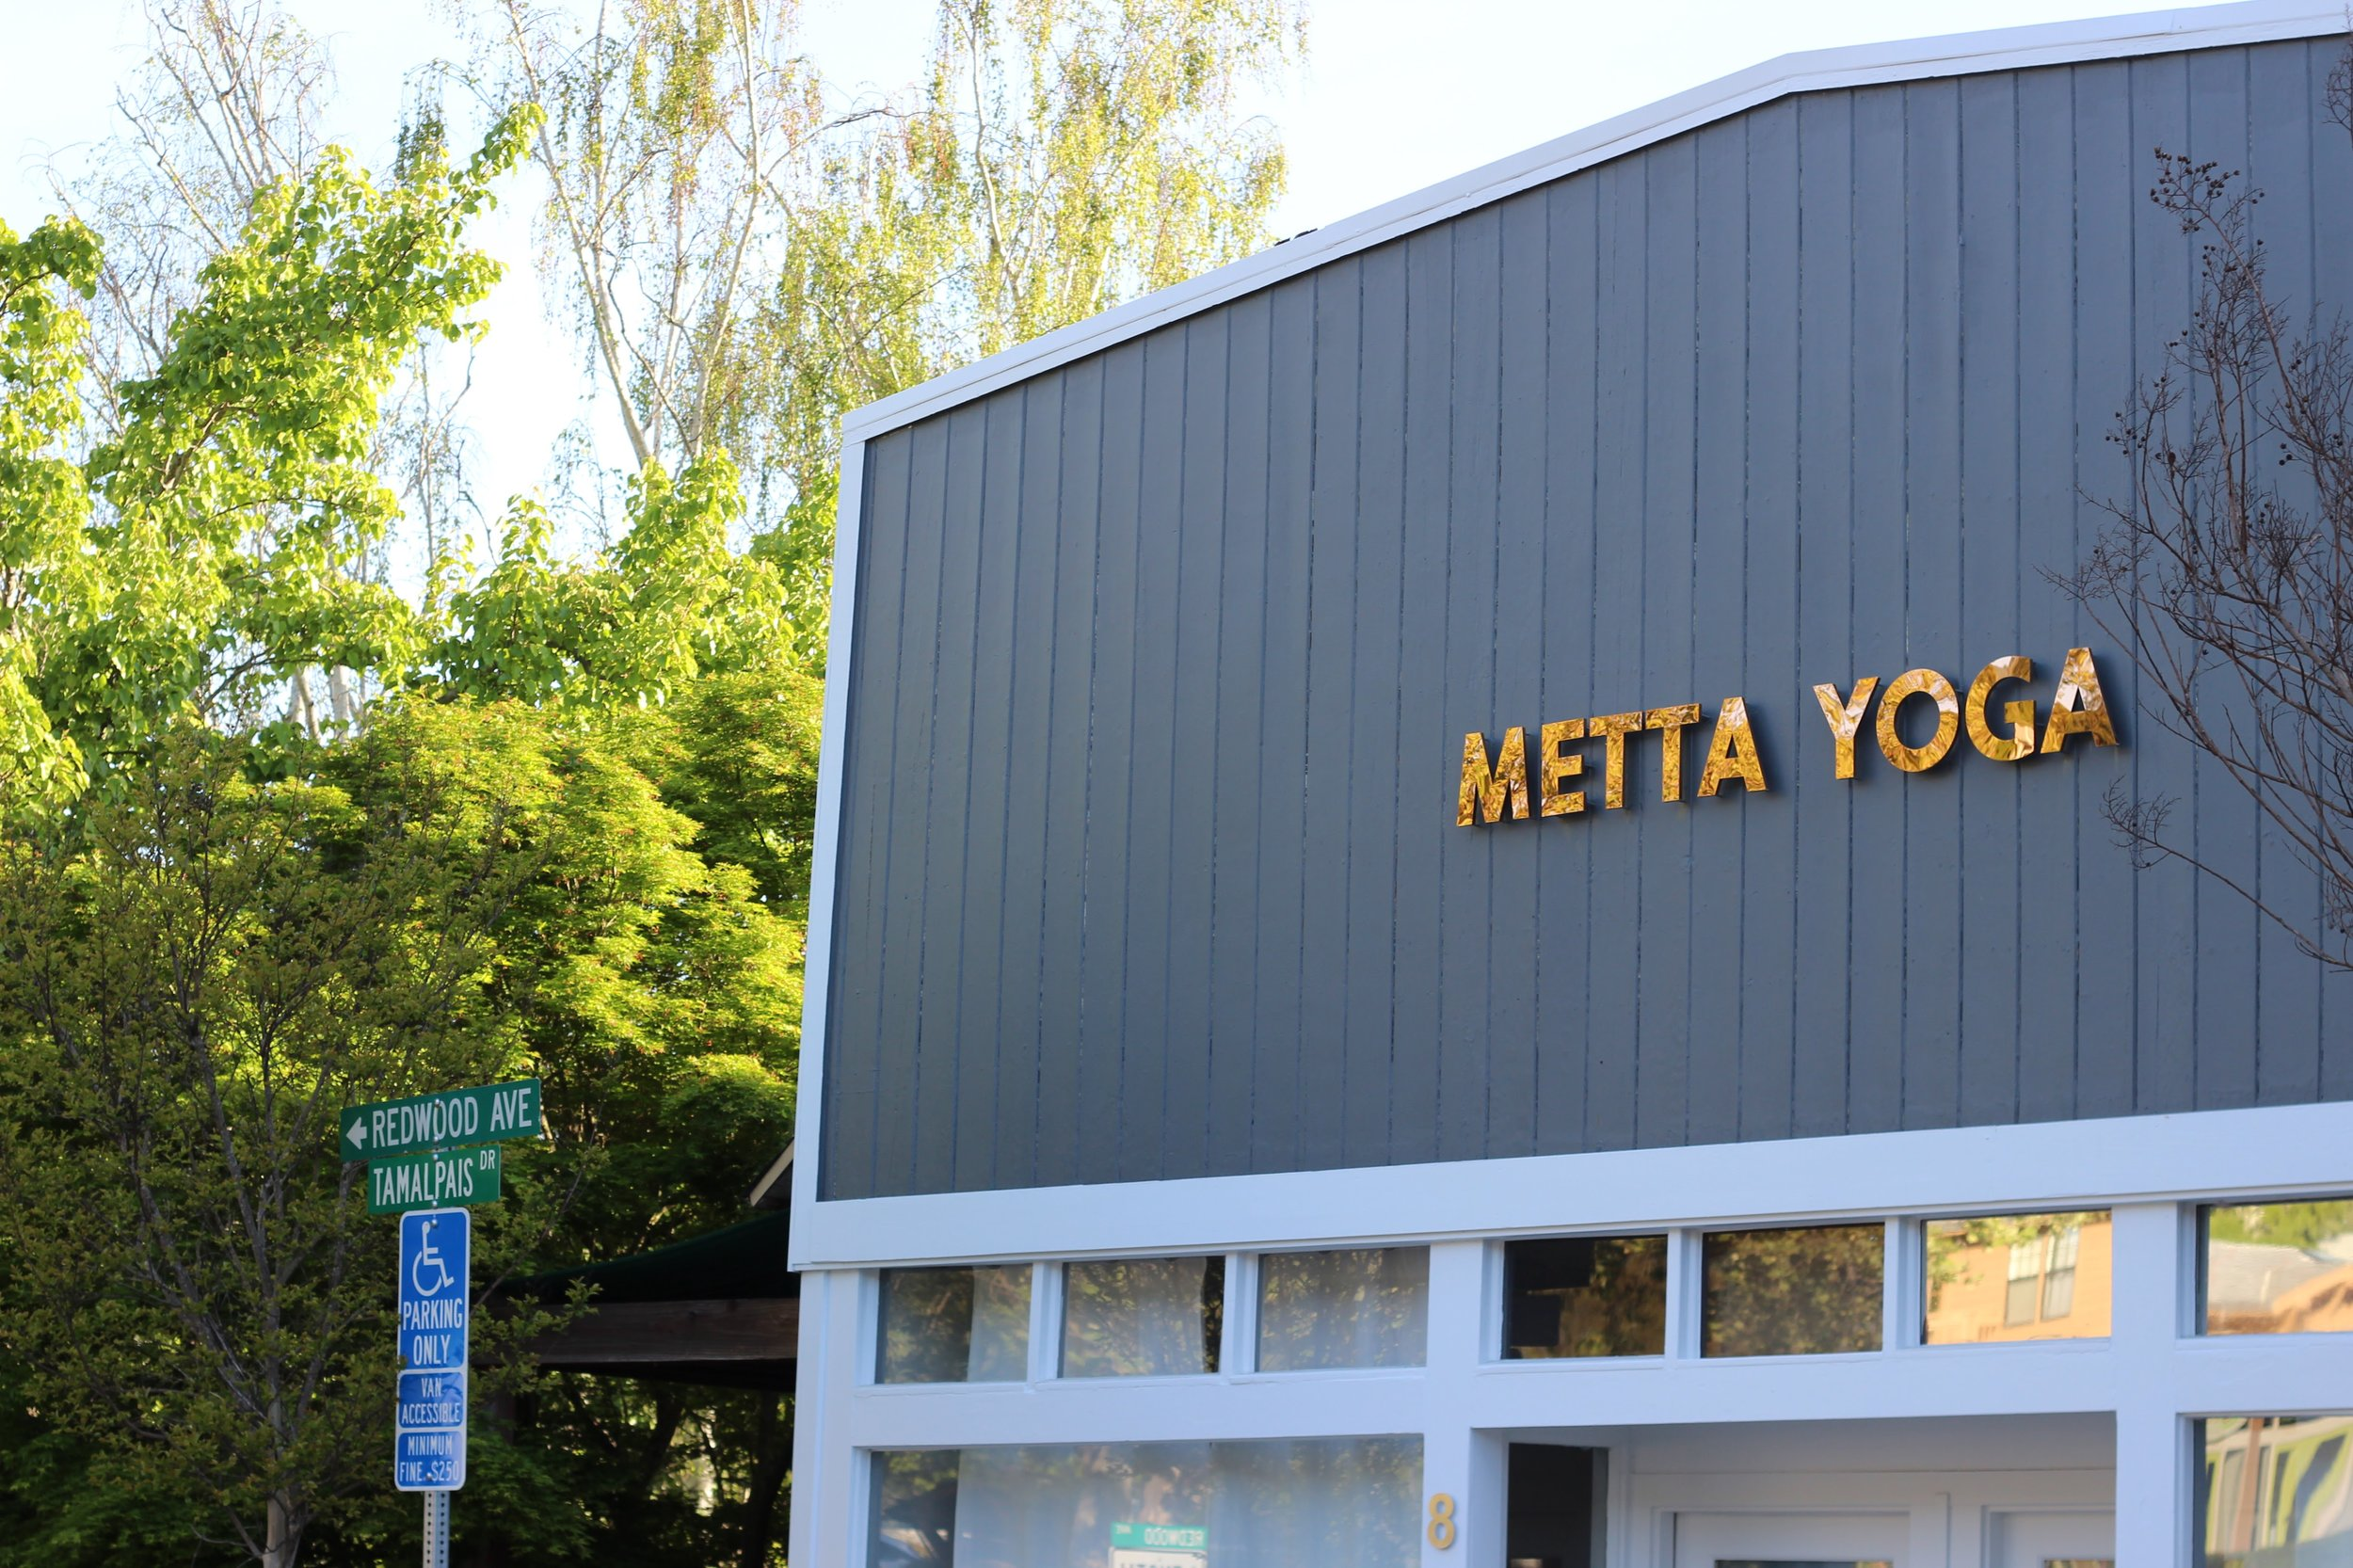 metta yoga marin, best yoga studio marin county